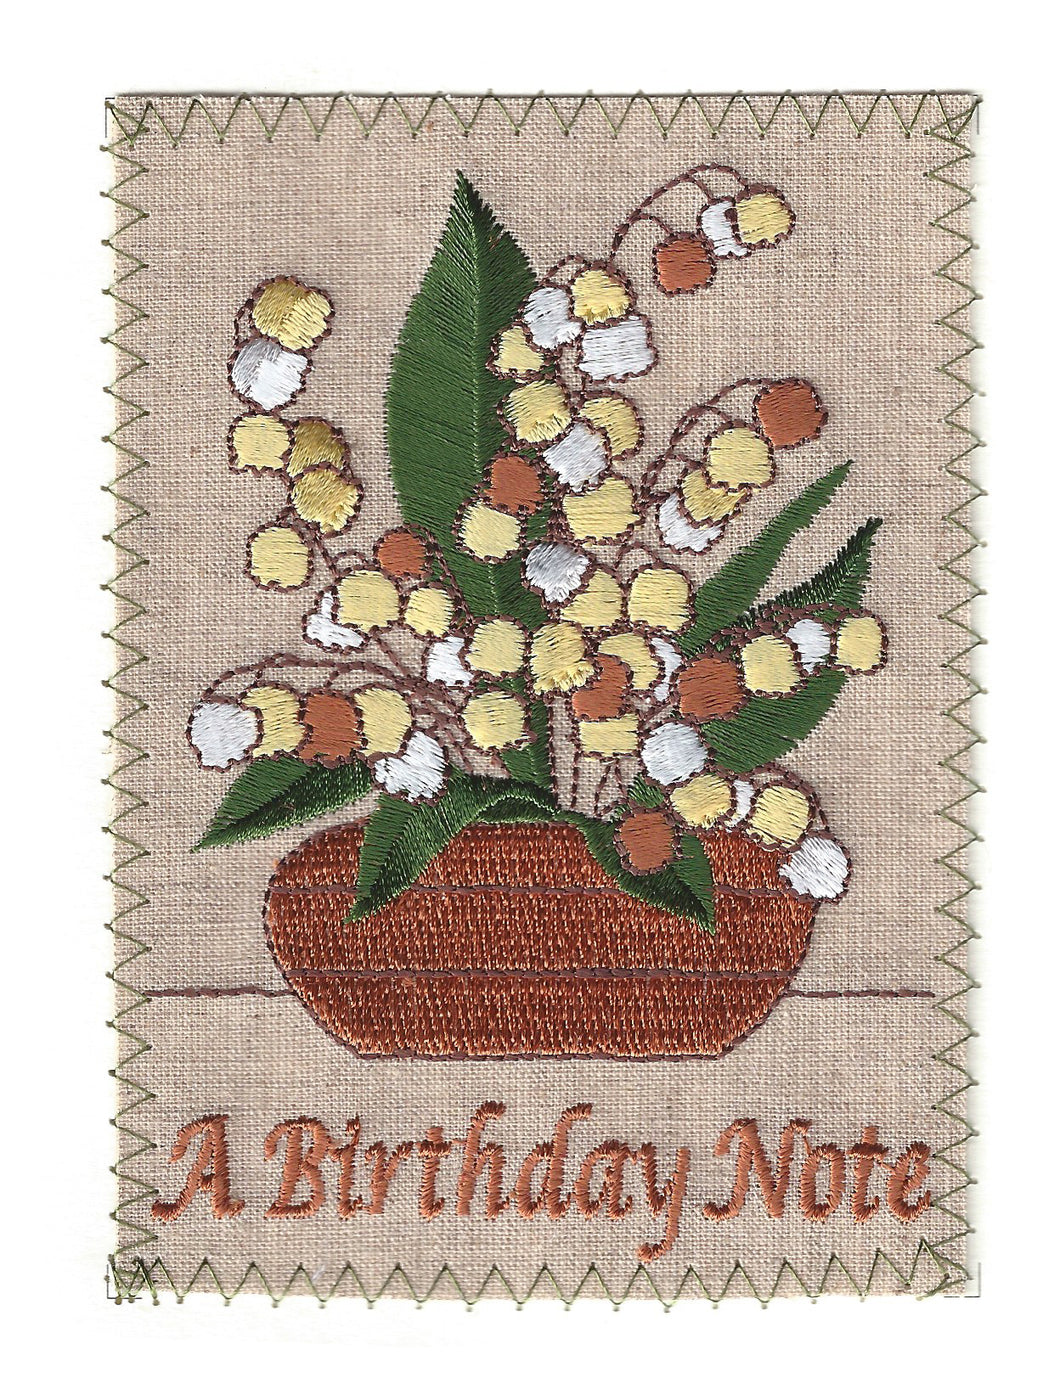 Birthday Note Flower Pot - BD097P